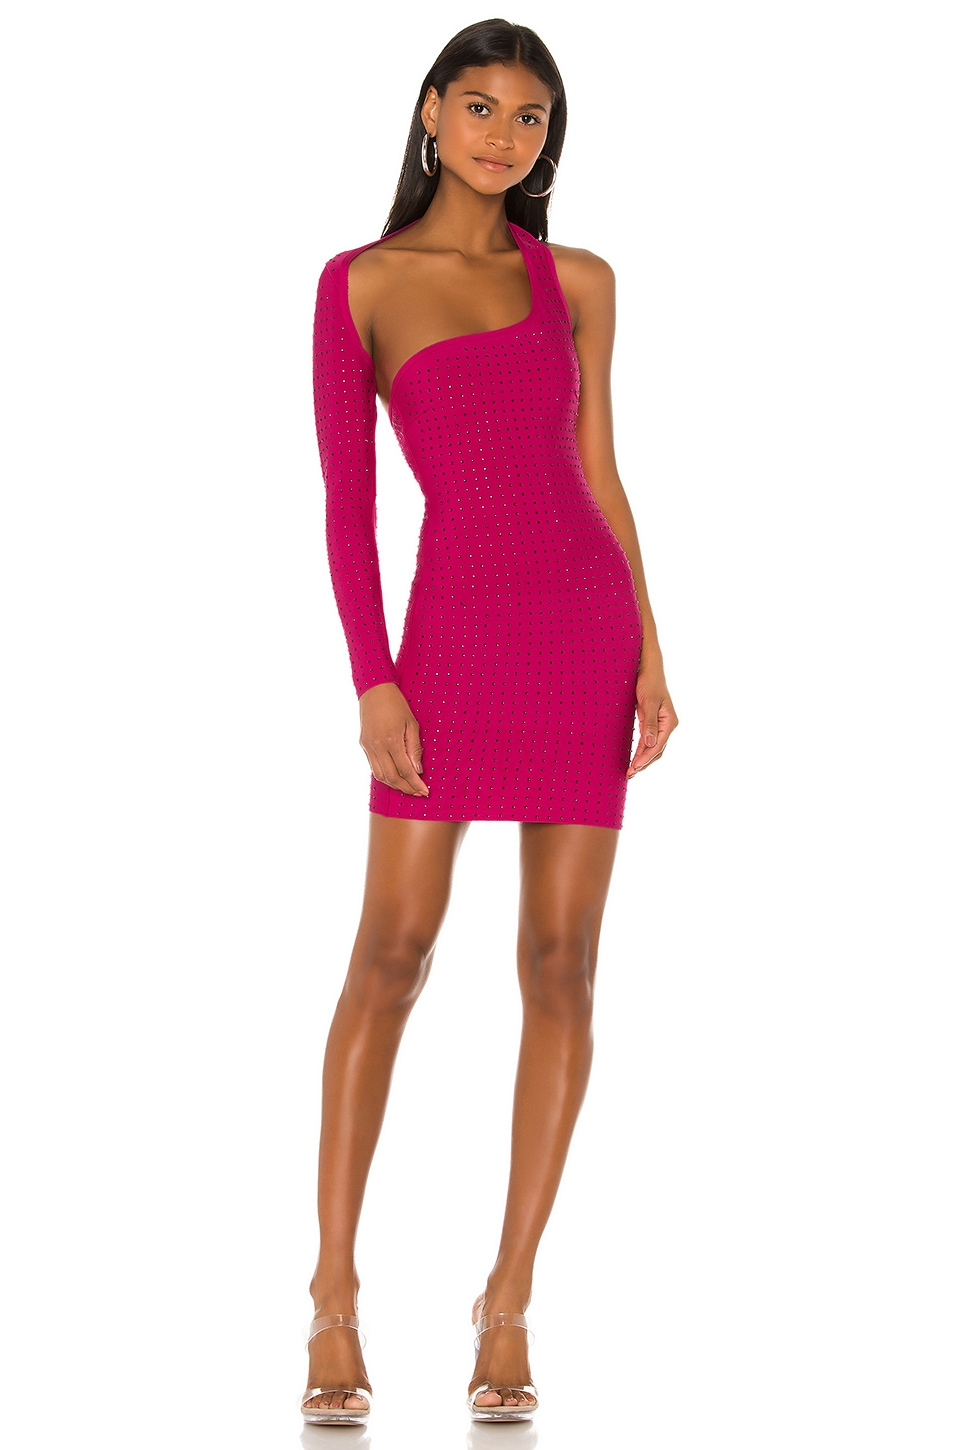 superdown x Draya Michele Icing on the Cake Dress in Pink